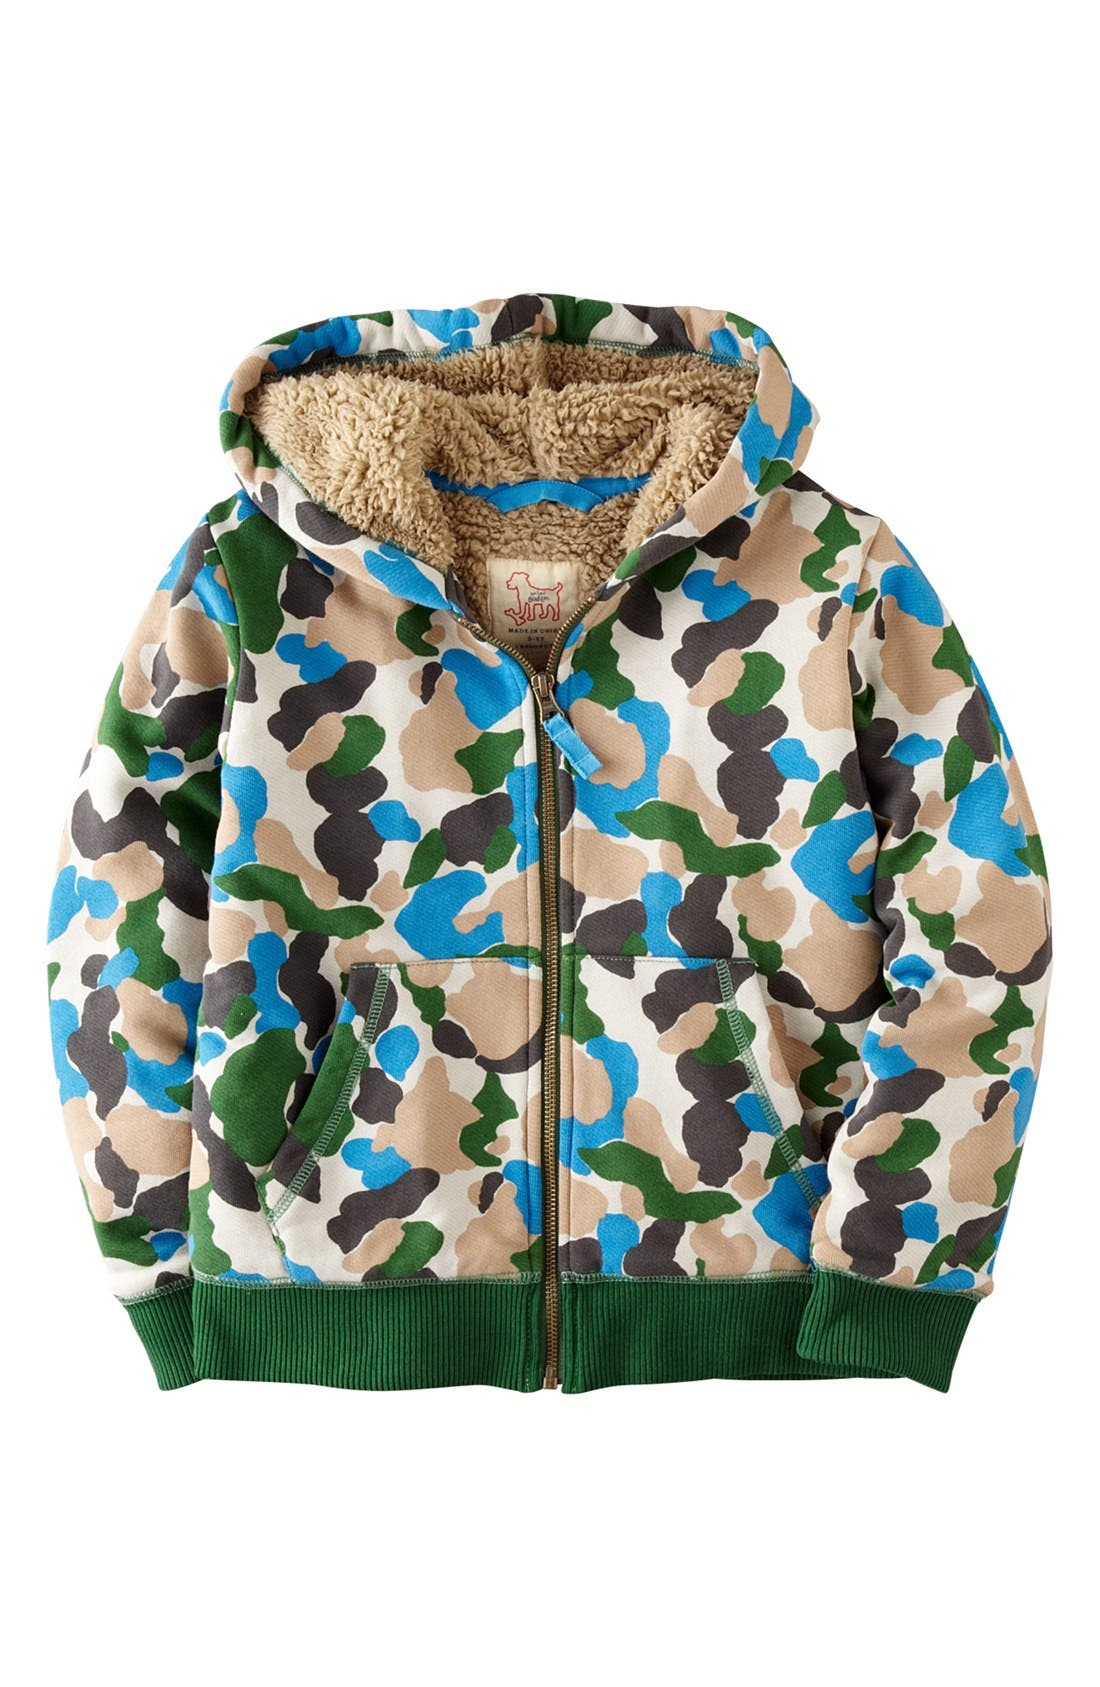 Main Image - Mini Boden 'Shaggy' Hoodie (Toddler Boys, Little Boys & Big Boys)